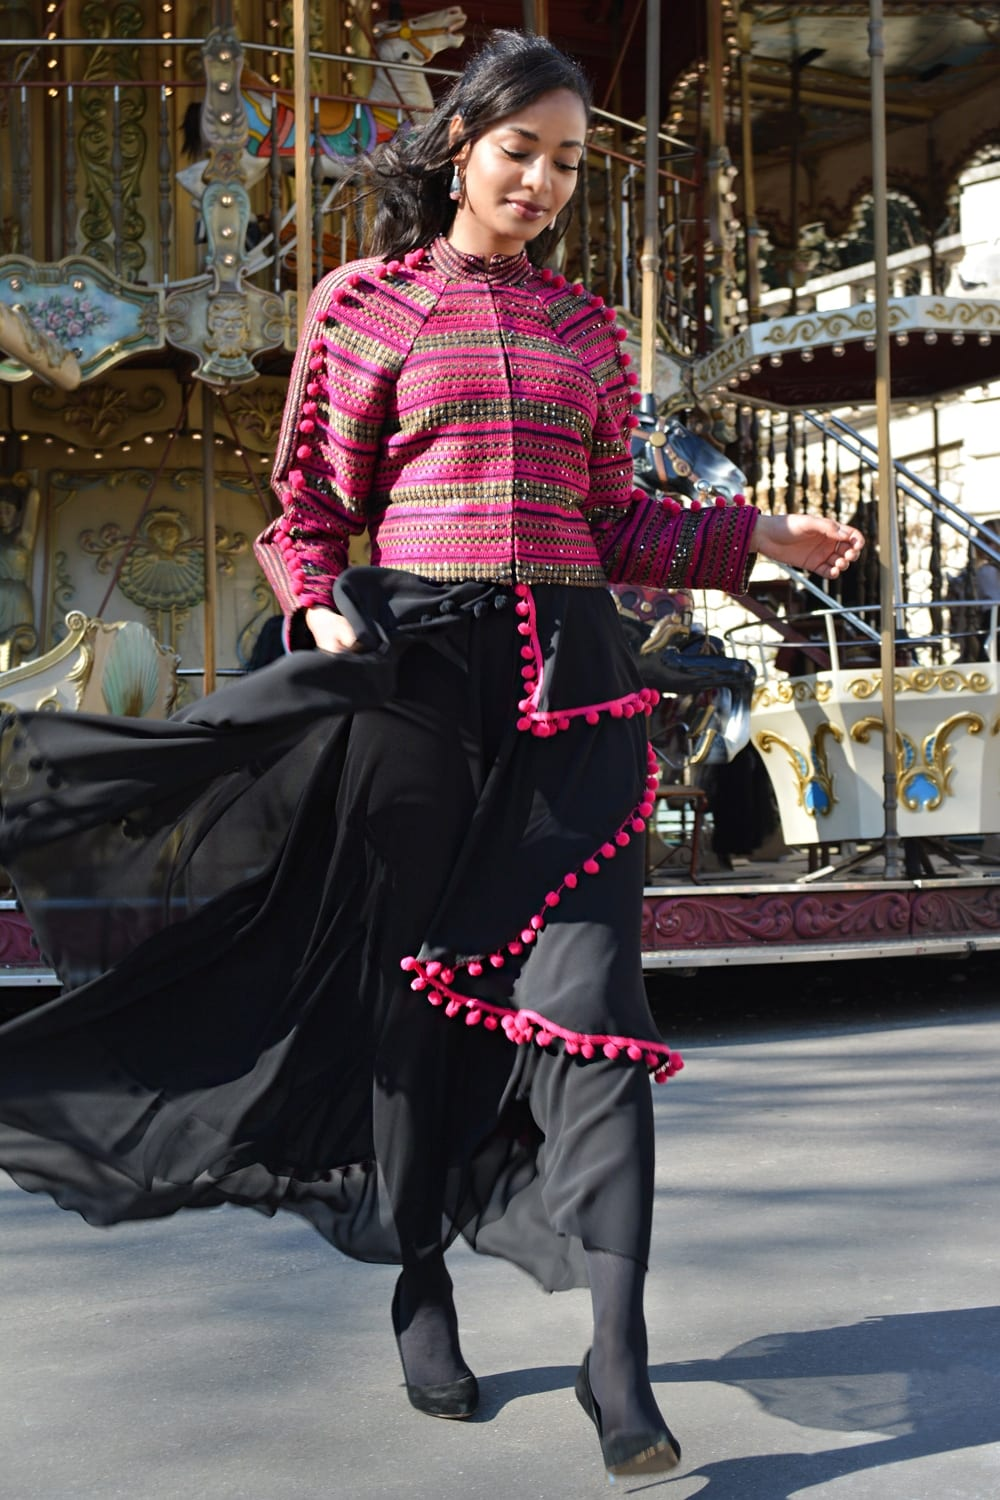 Fashion Paris. Long black skirt and pink jacket by Erik Schaix fashion designer Paris.